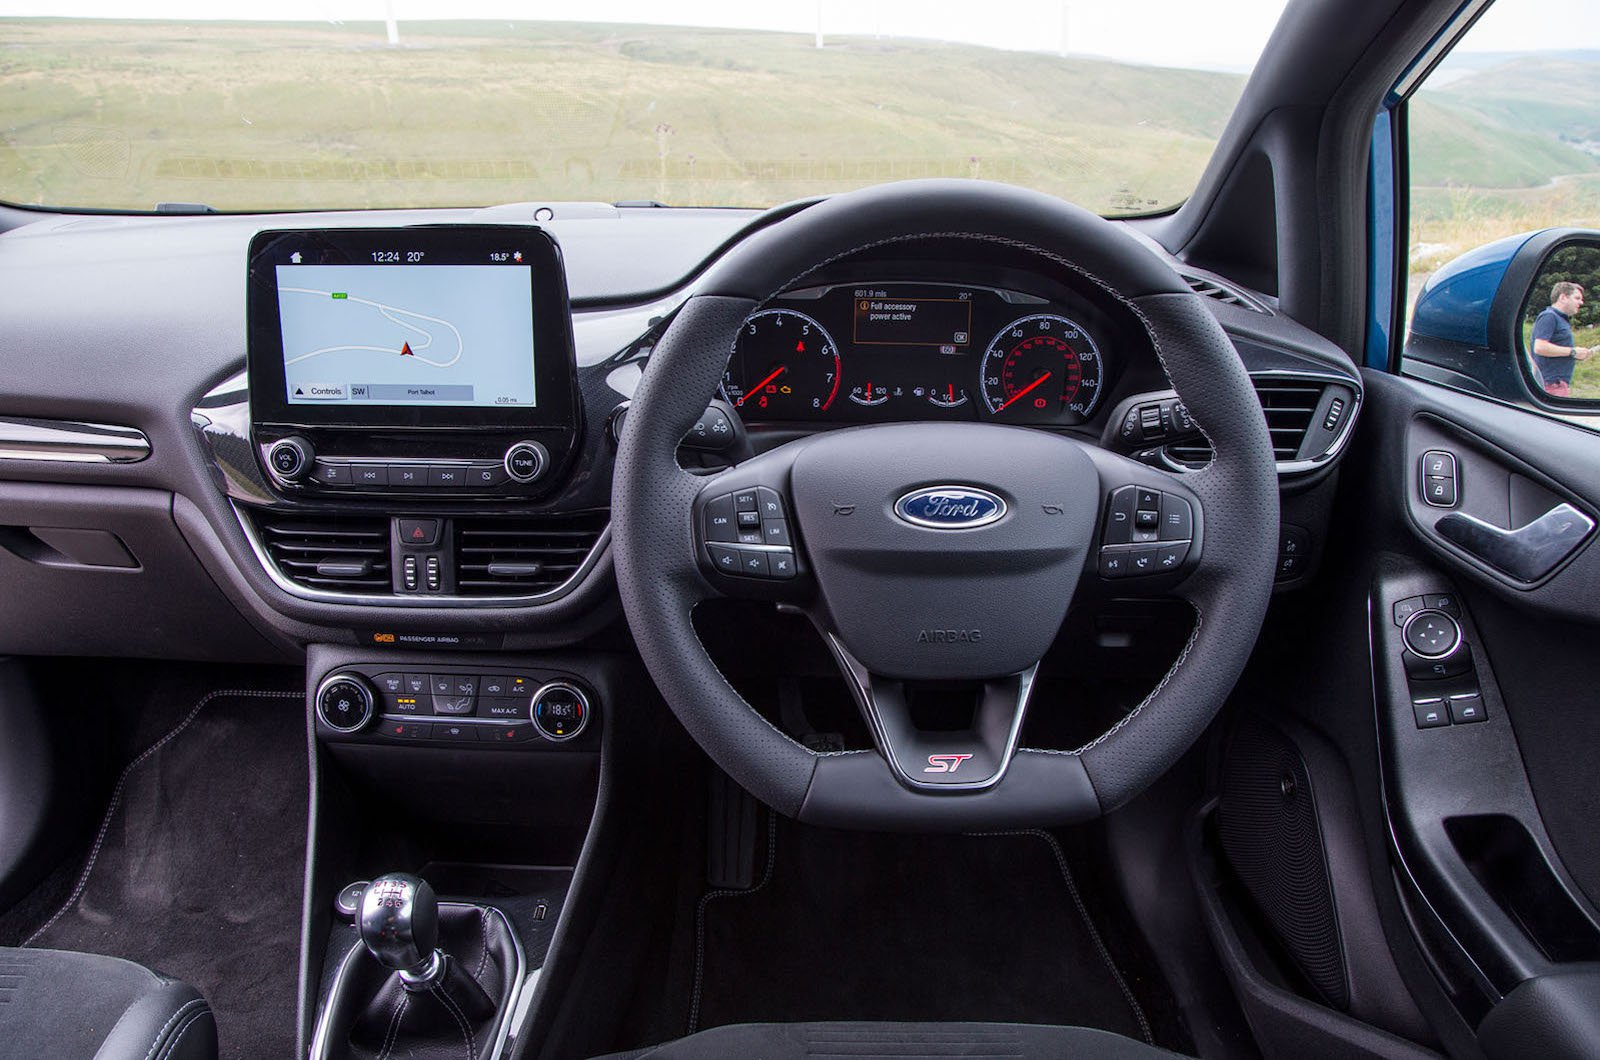 2019 Ford Fiesta ST dashboard